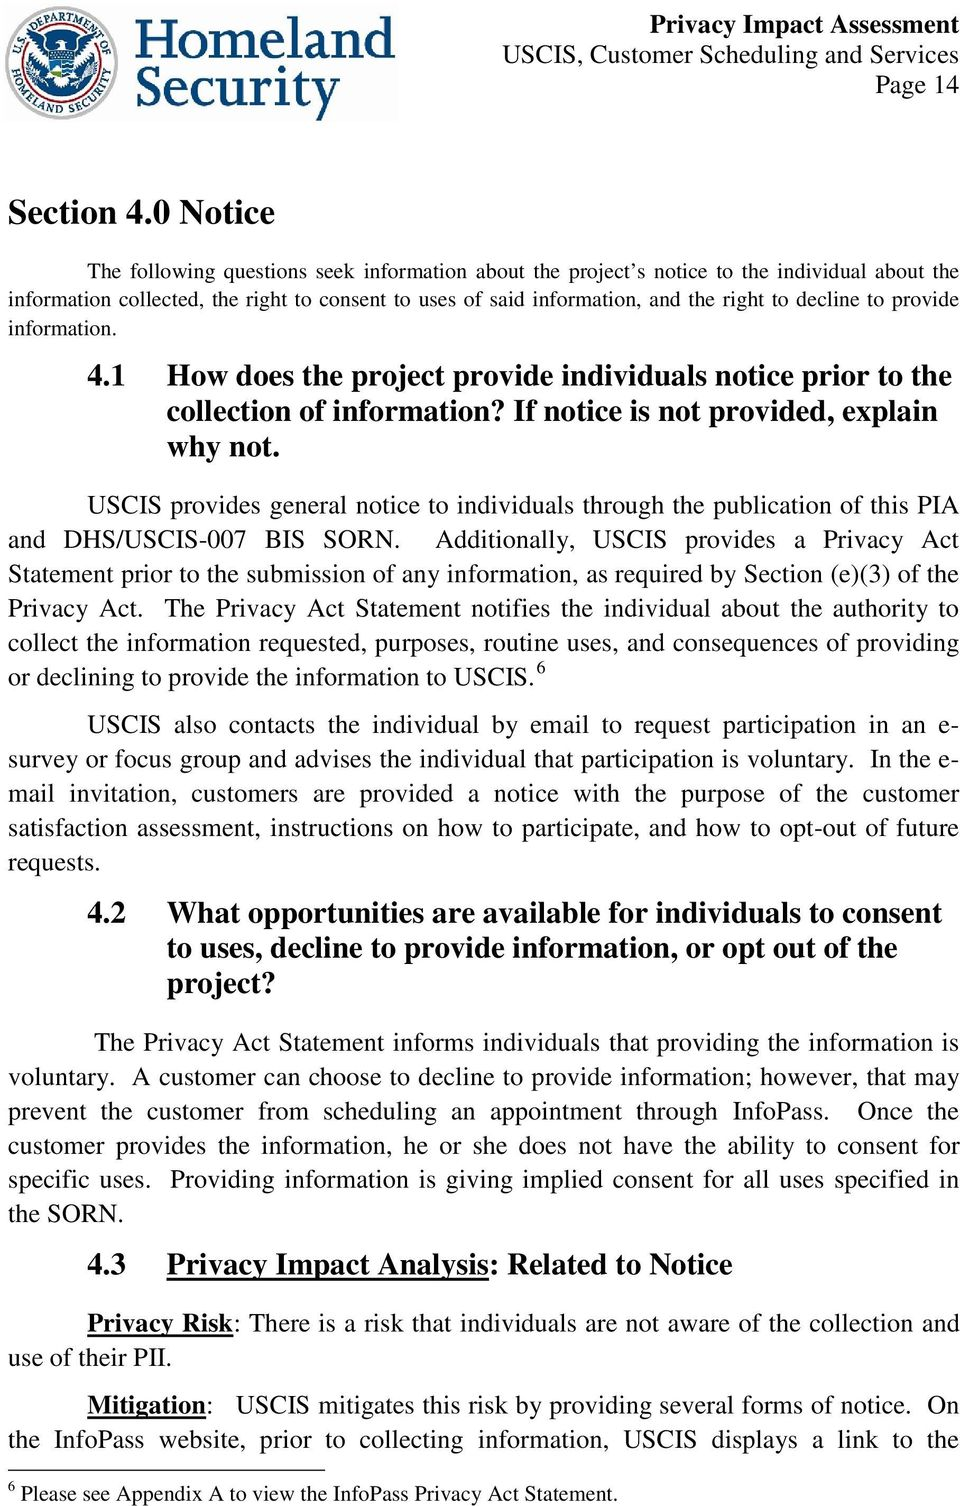 decline to provide information. 4.1 How does the project provide individuals notice prior to the collection of information? If notice is not provided, explain why not.